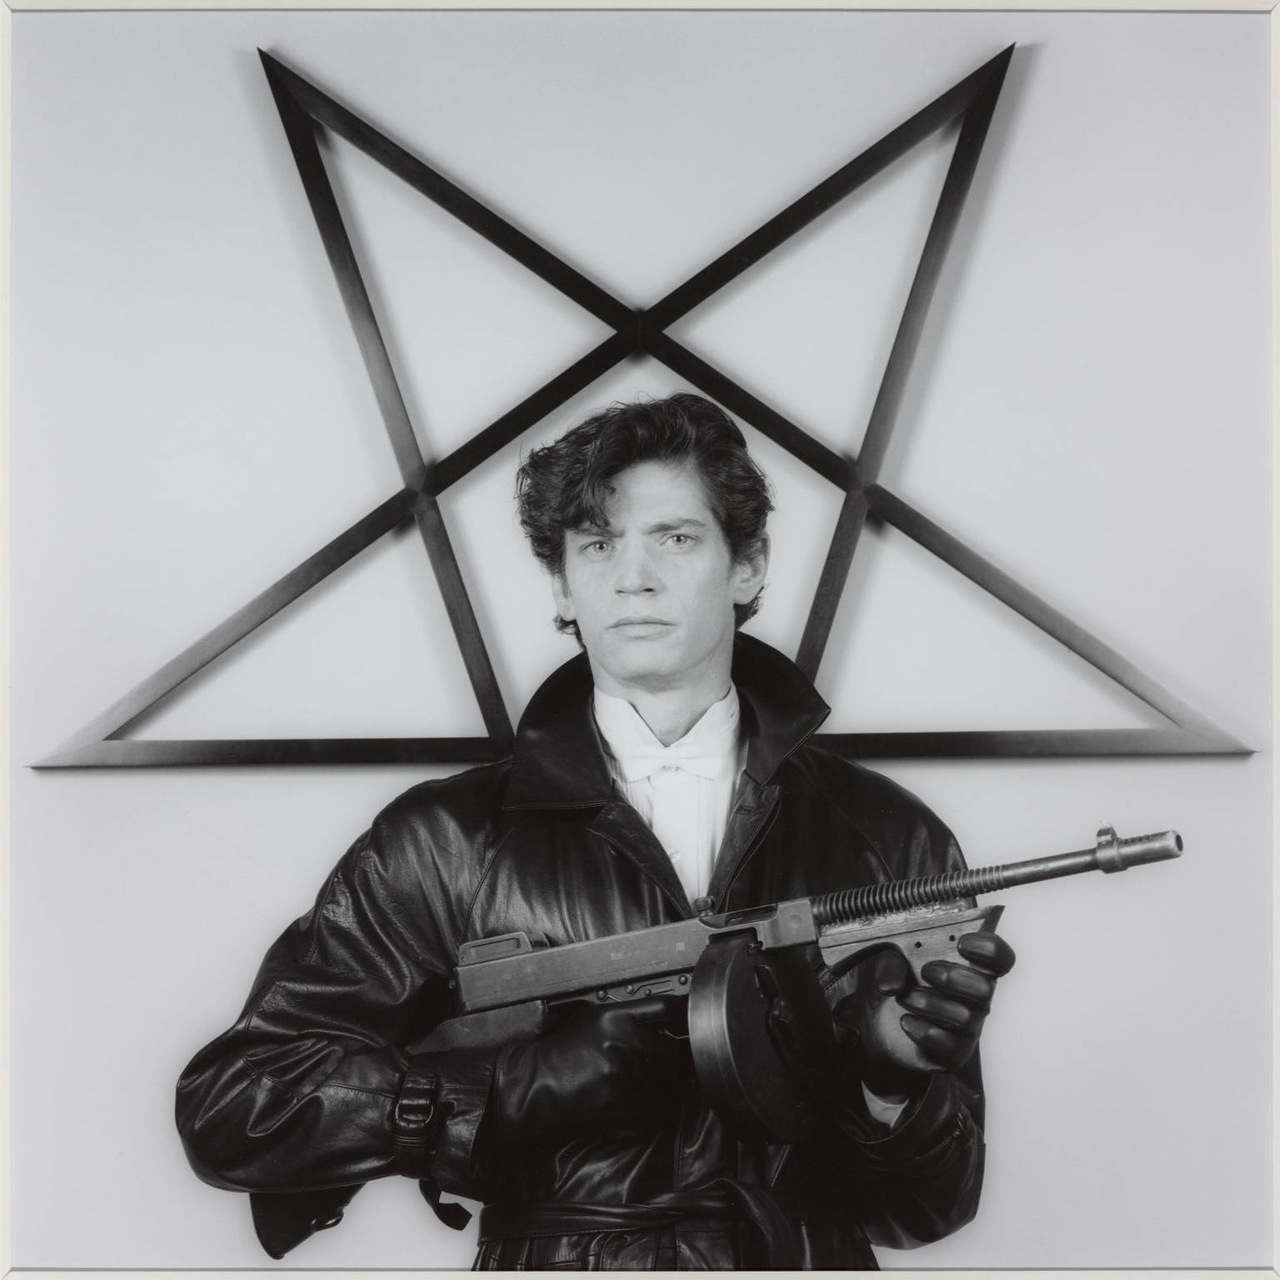 Self Portrait 1983 by Robert Mapplethorpe 1946-1989